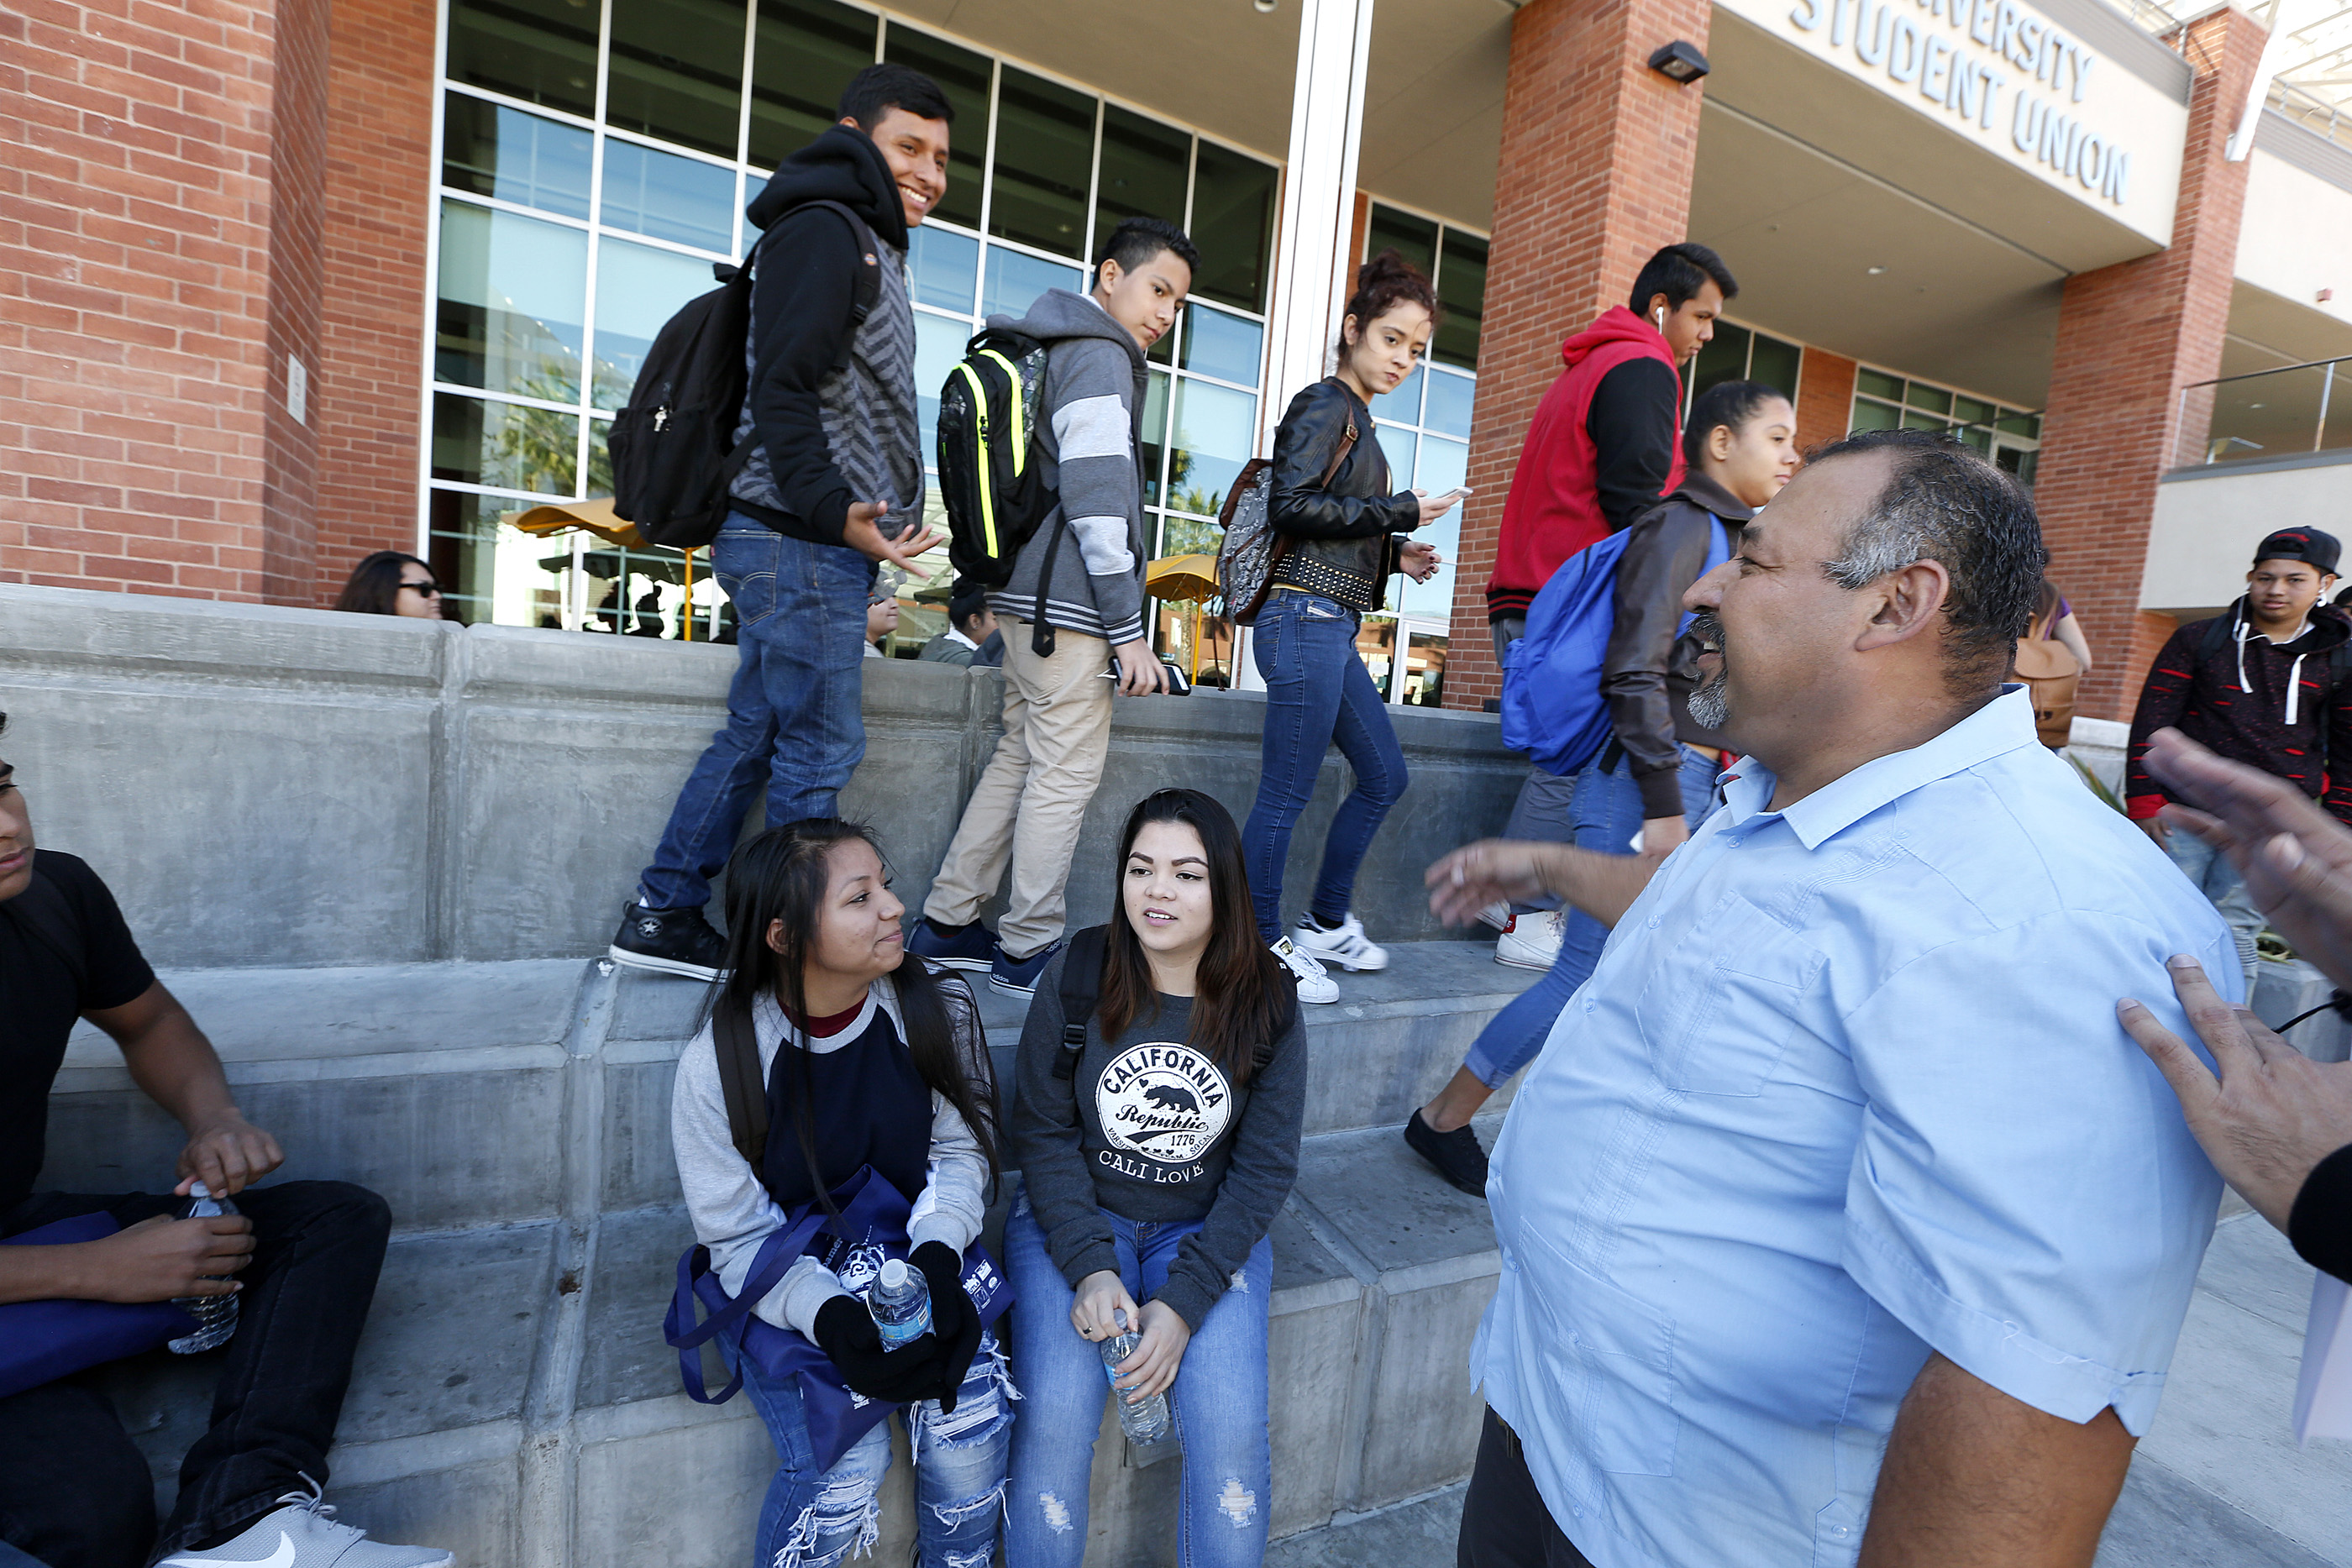 12/02/16/LOS ANGELES/Alex Sanchez, co founder of Homies Unidos, with a group of youth during the Central American Youth Leadership Conference held at California State University Los Angeles. (Photo by Aurelia Ventura/La Opinion)